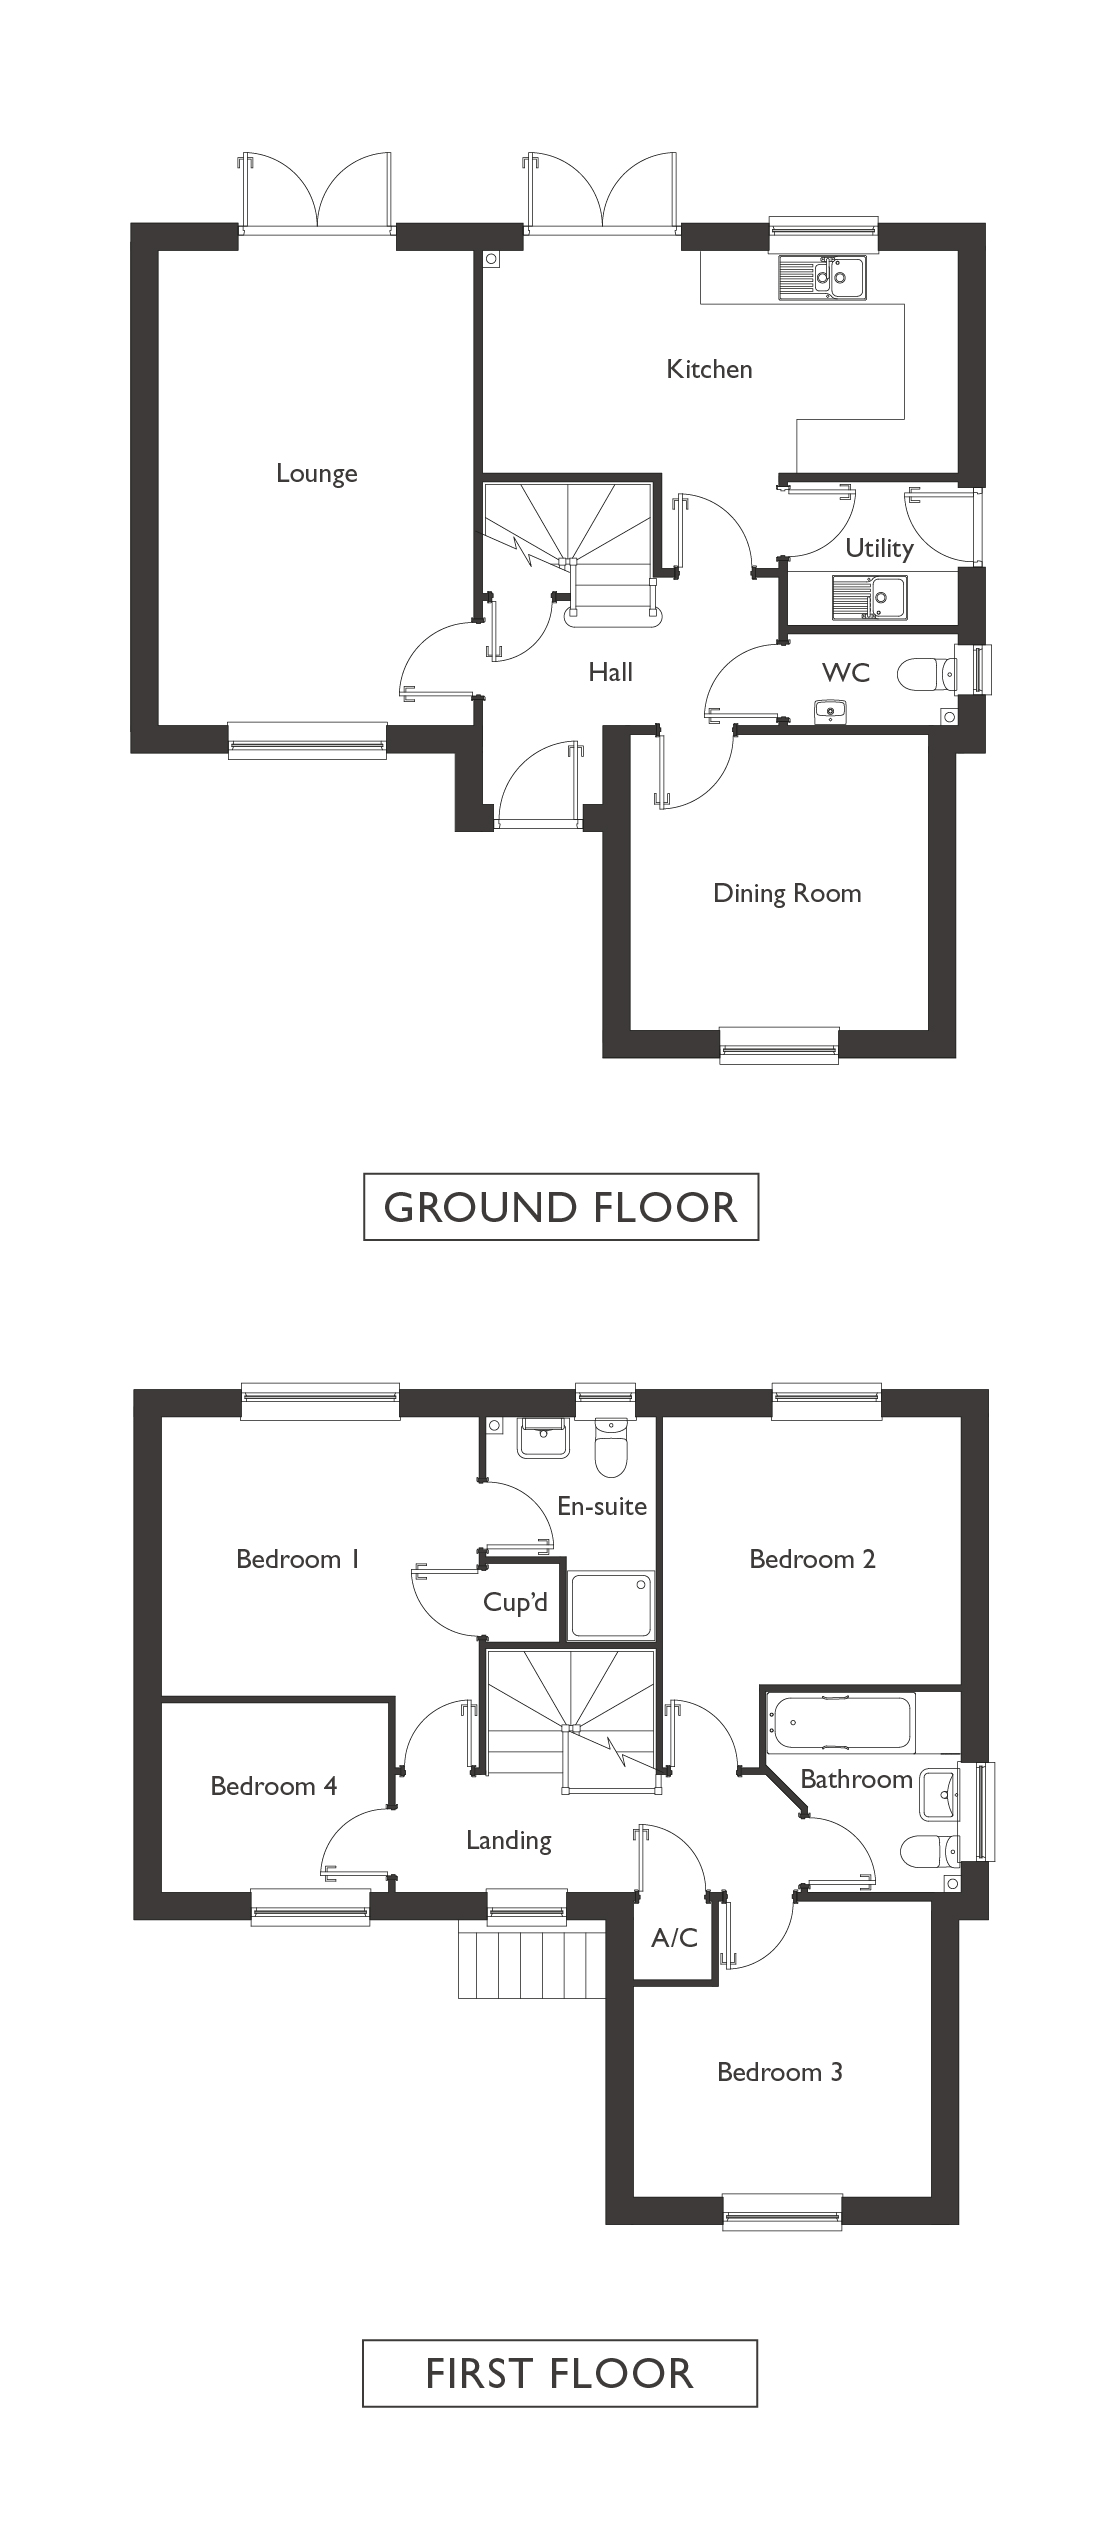 Valley View - Plot 4 - Yoxford - Floor Plans